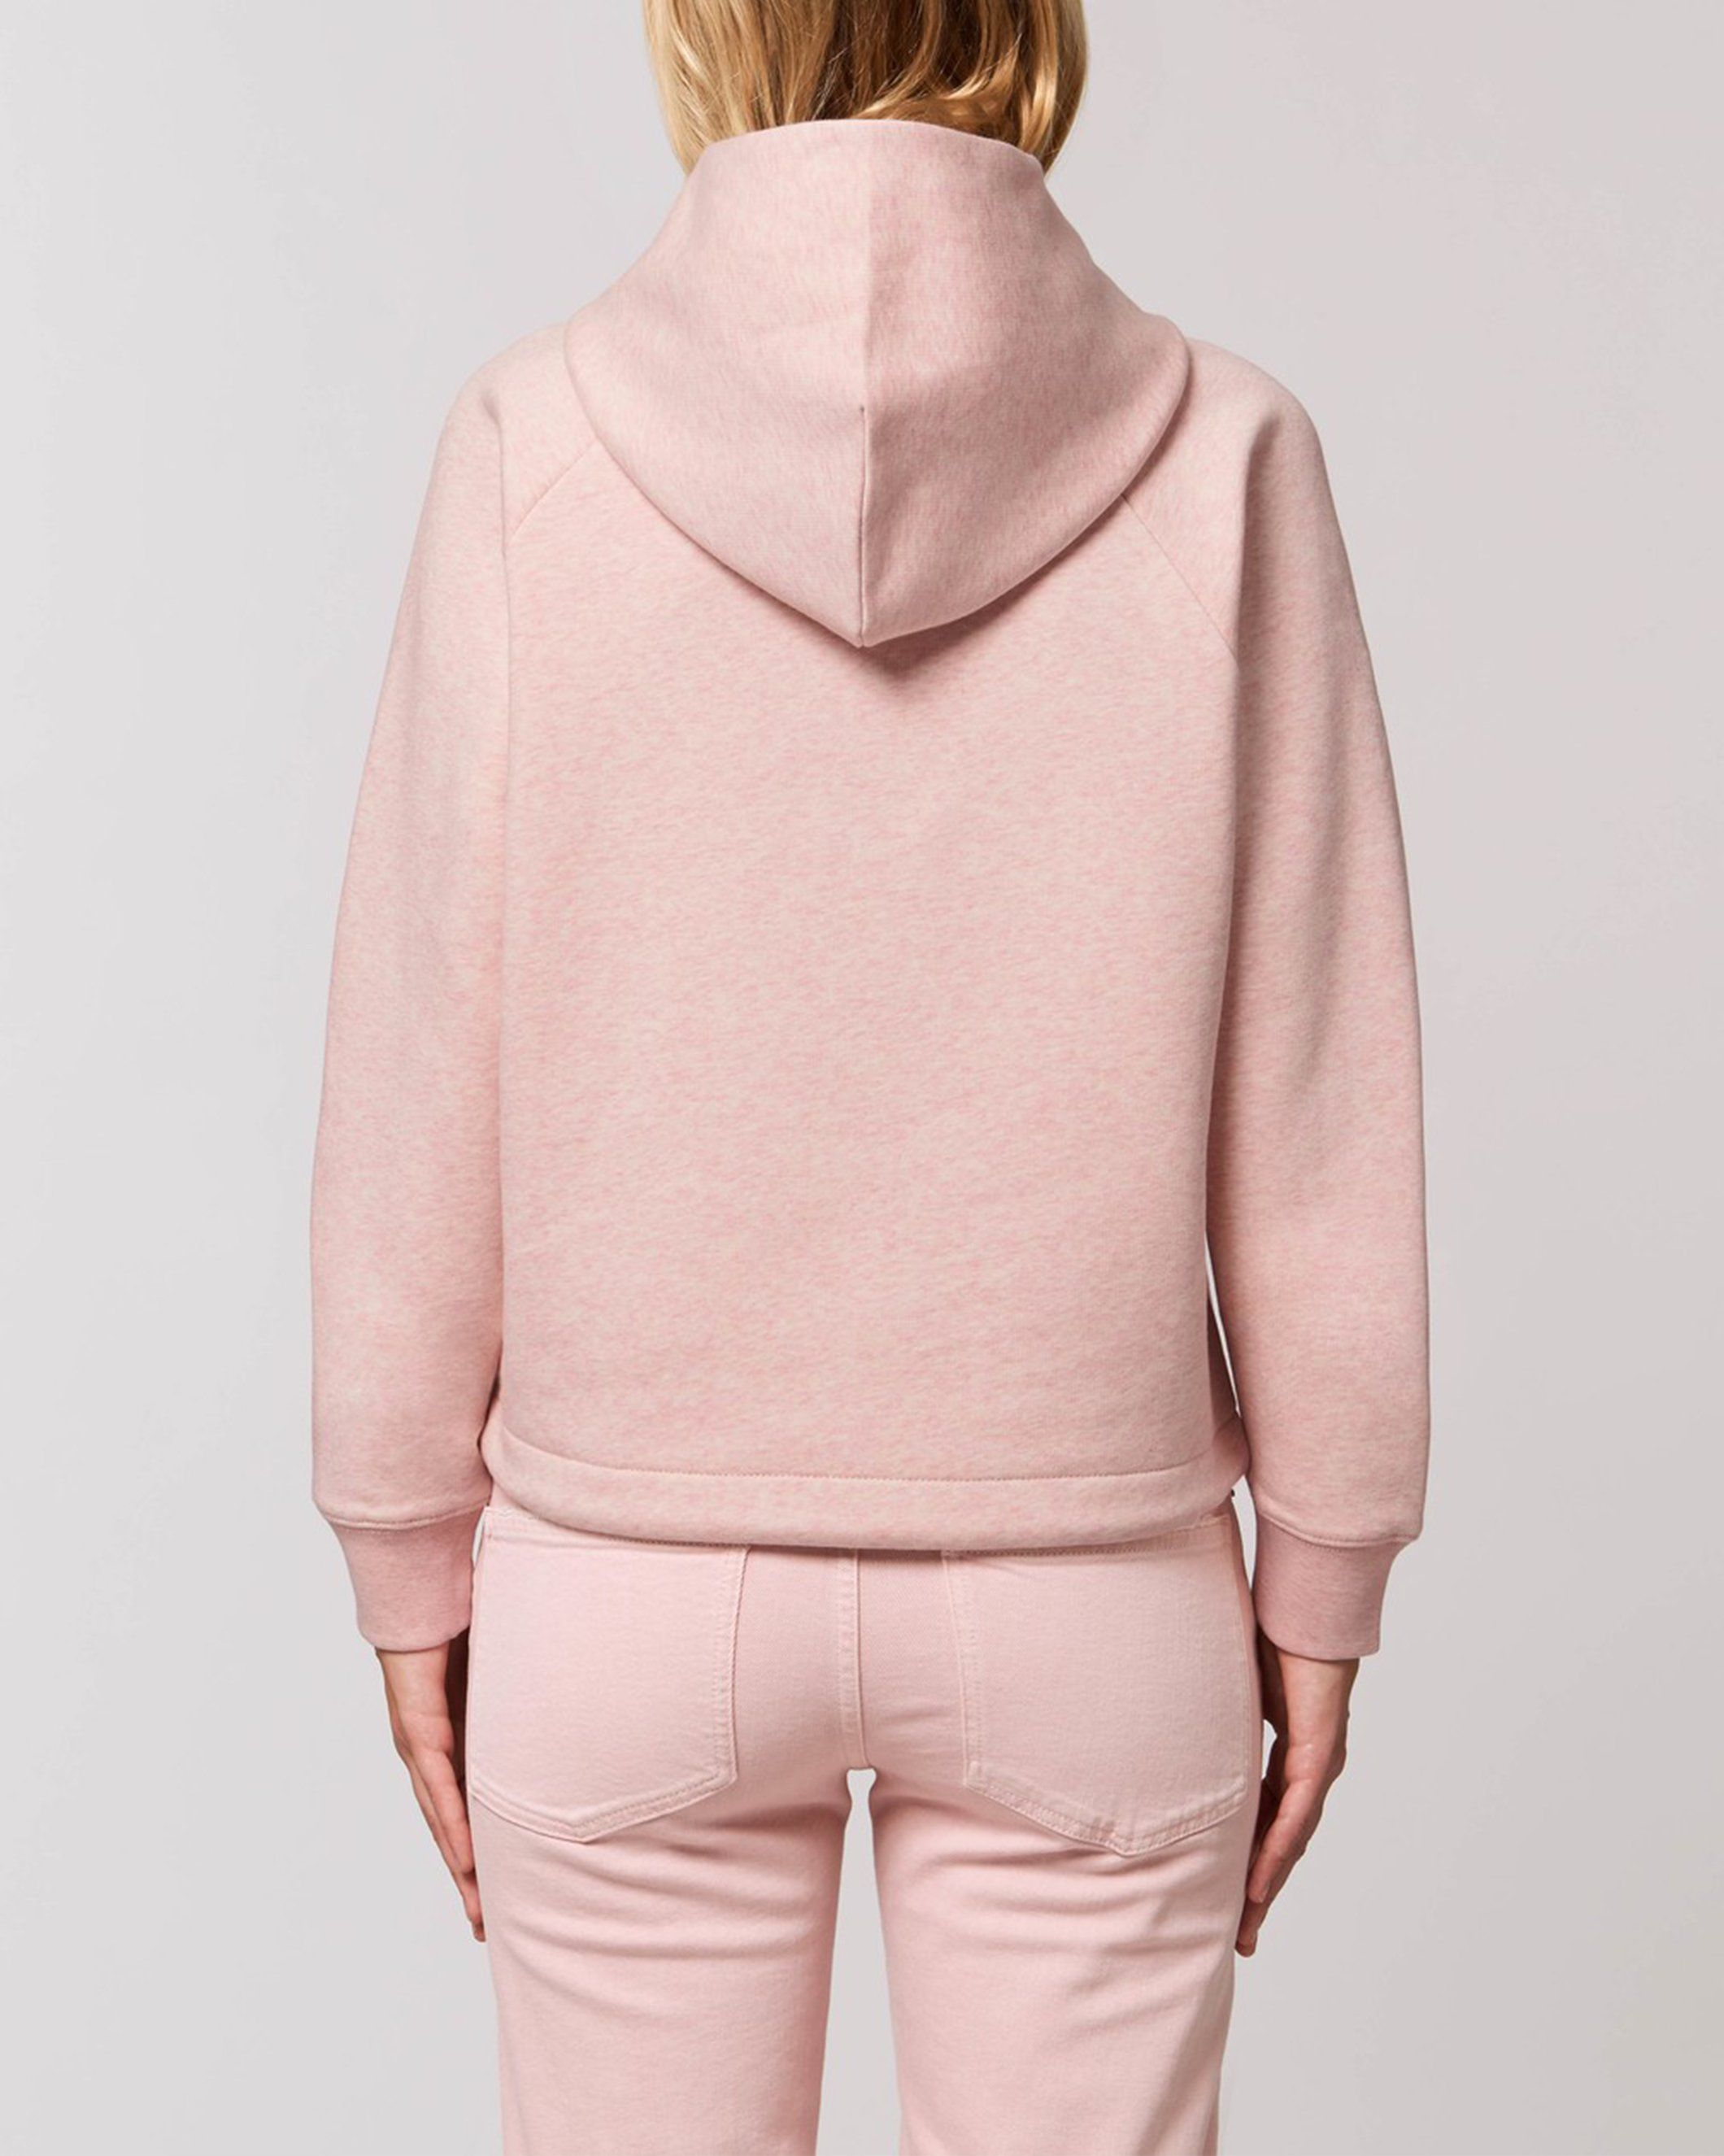 Udana Women's Cropped Hoodie in Pink